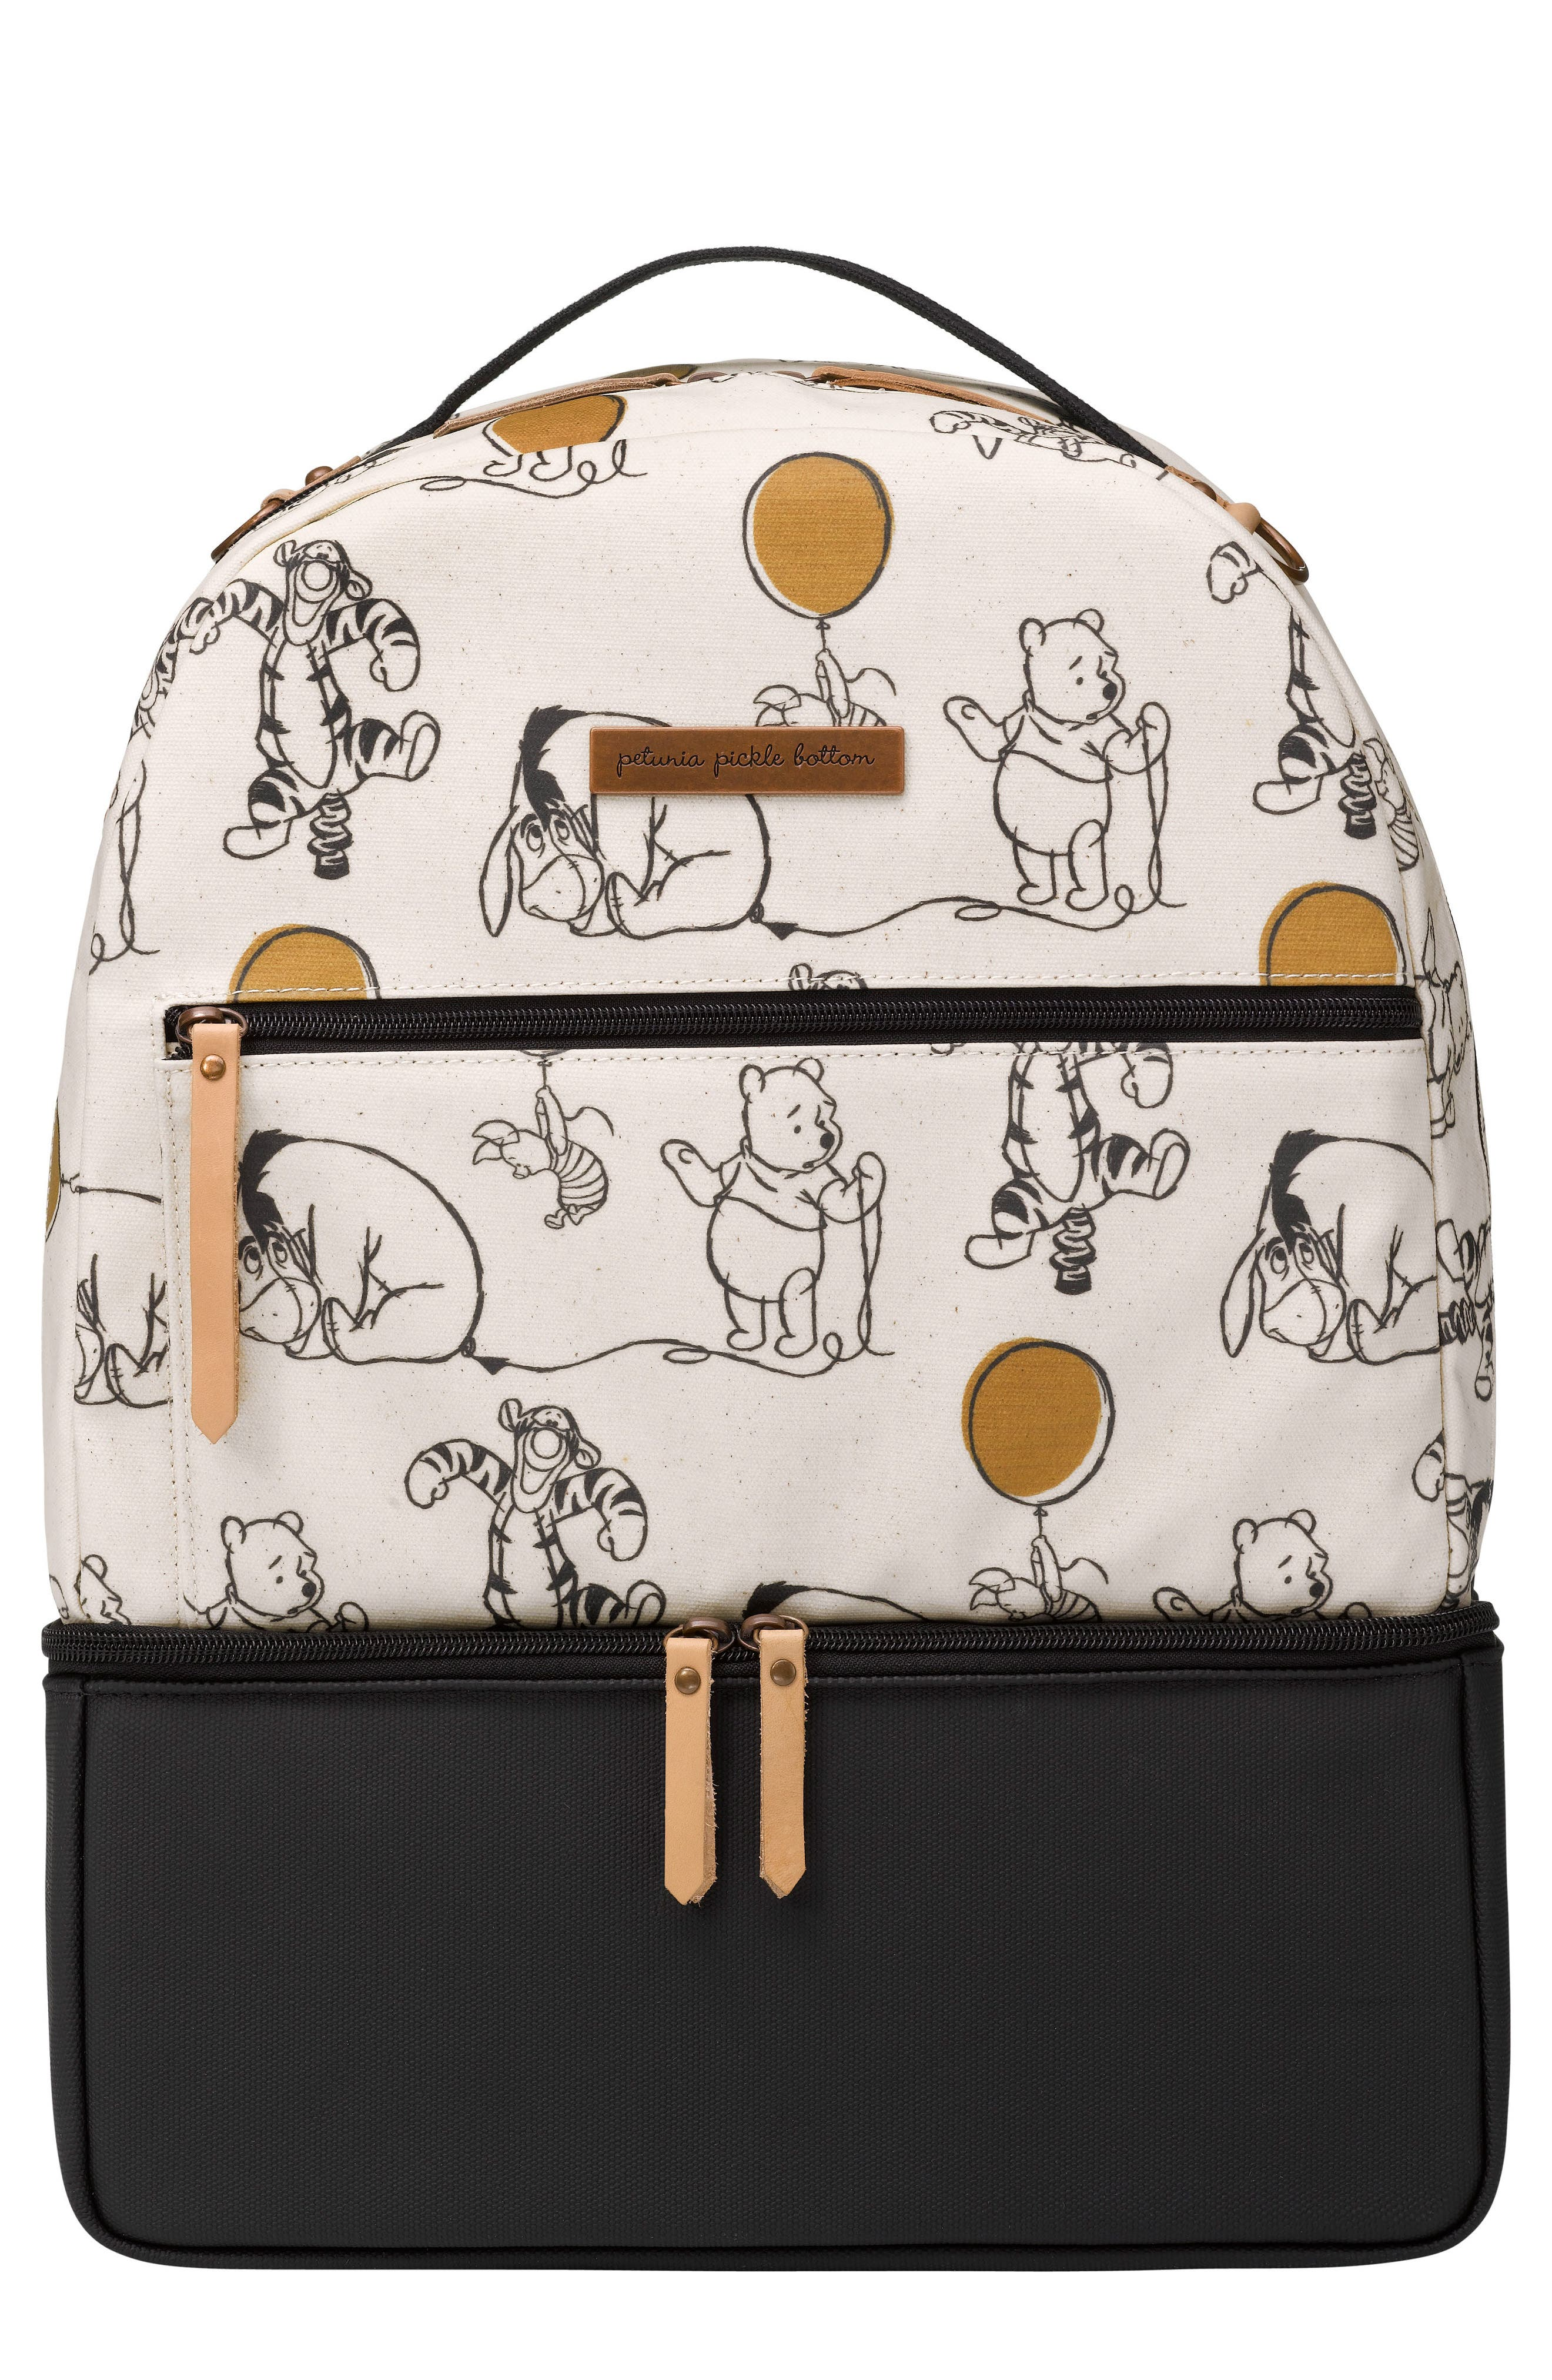 x Disney<sup>®</sup> Axis Backpack,                             Main thumbnail 1, color,                             Winnie The Pooh And Friends